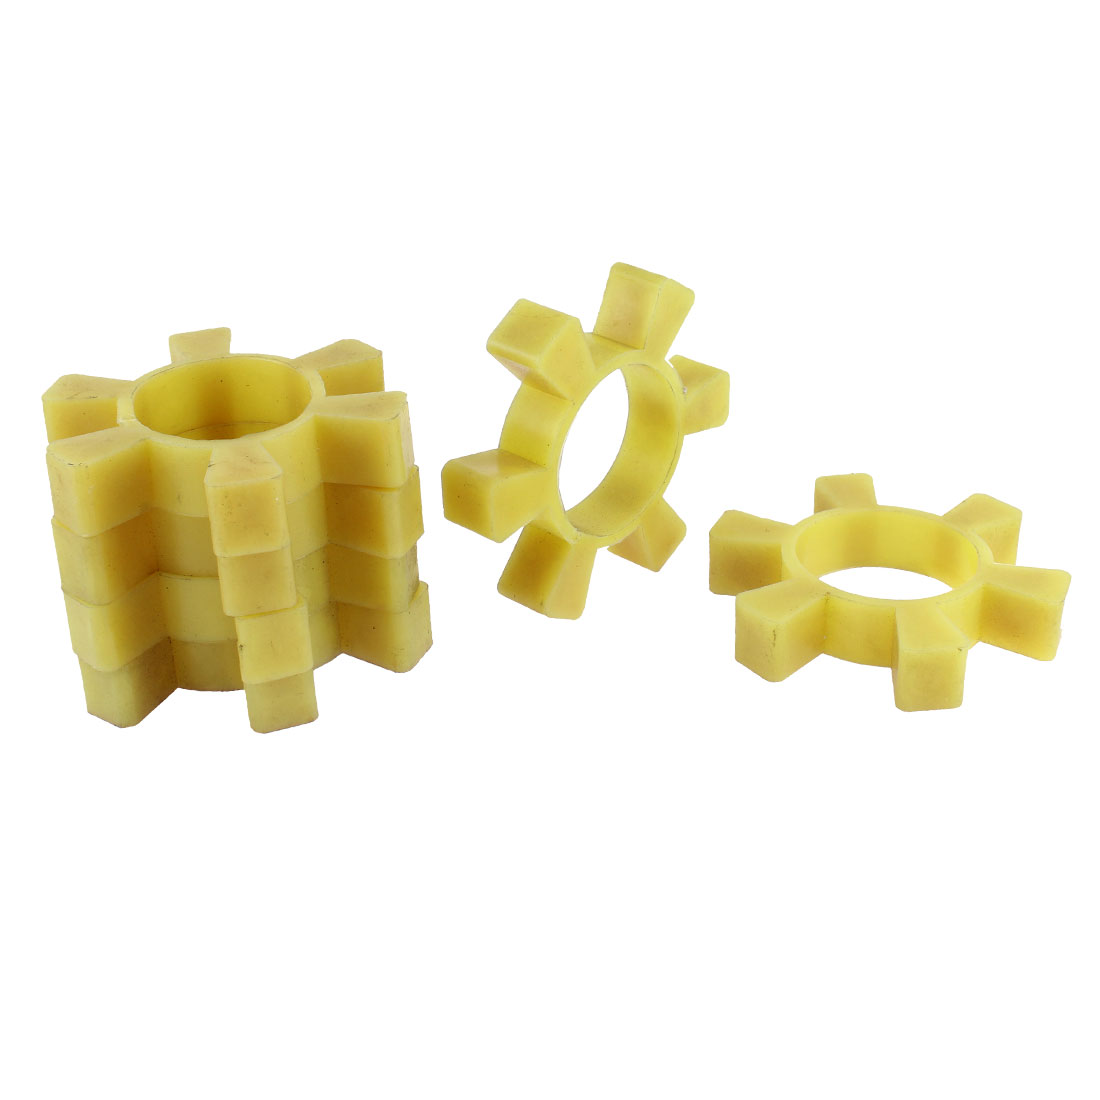 6pcs Flexible Plastic Coupling Coupler Damper Yellow 30mm Thickness